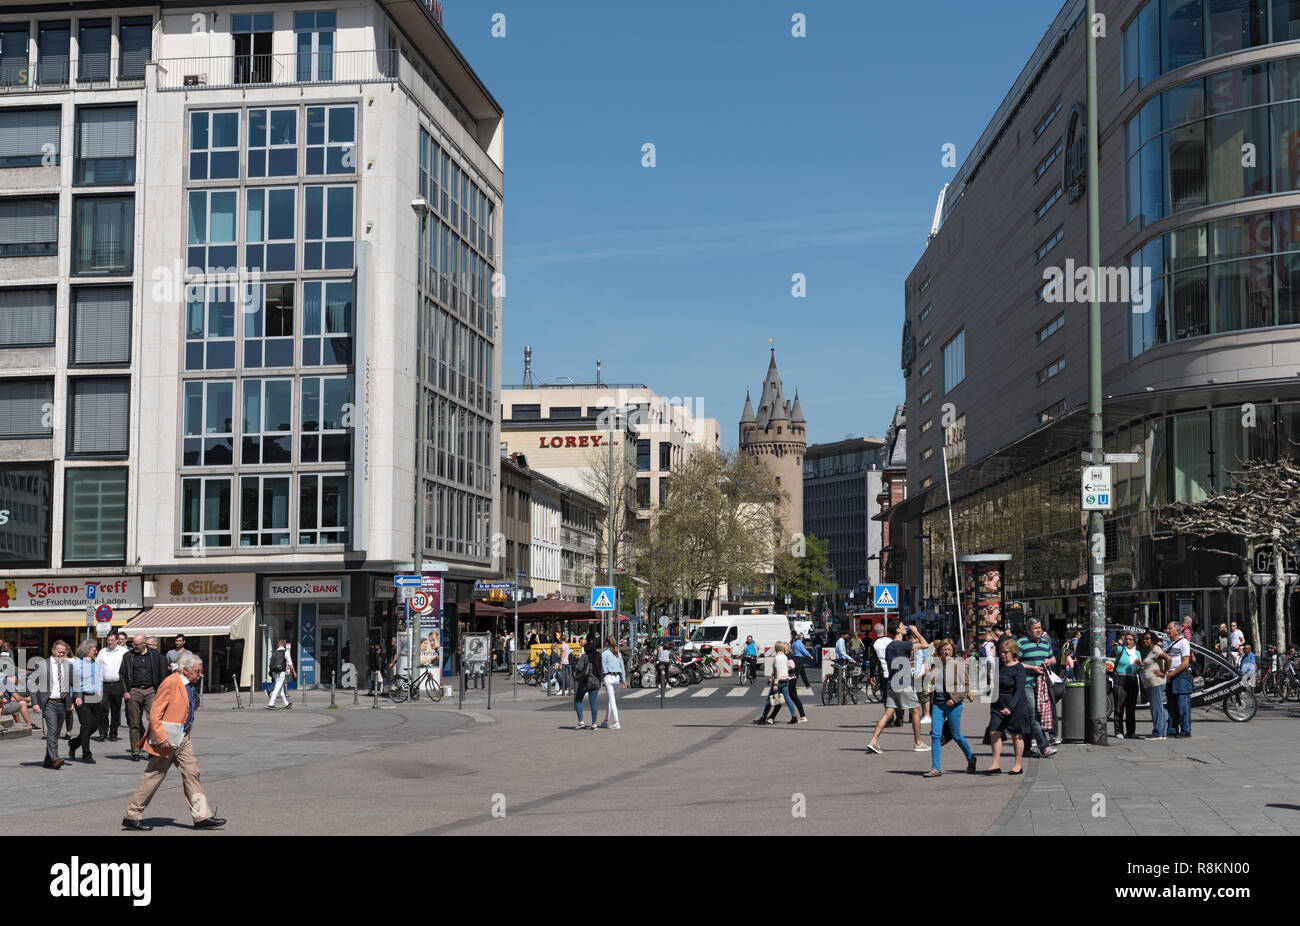 tourists and locals walking in the shopping streets zeil,  grosse eschenheimer, frankfurt am main, germany - Stock Image